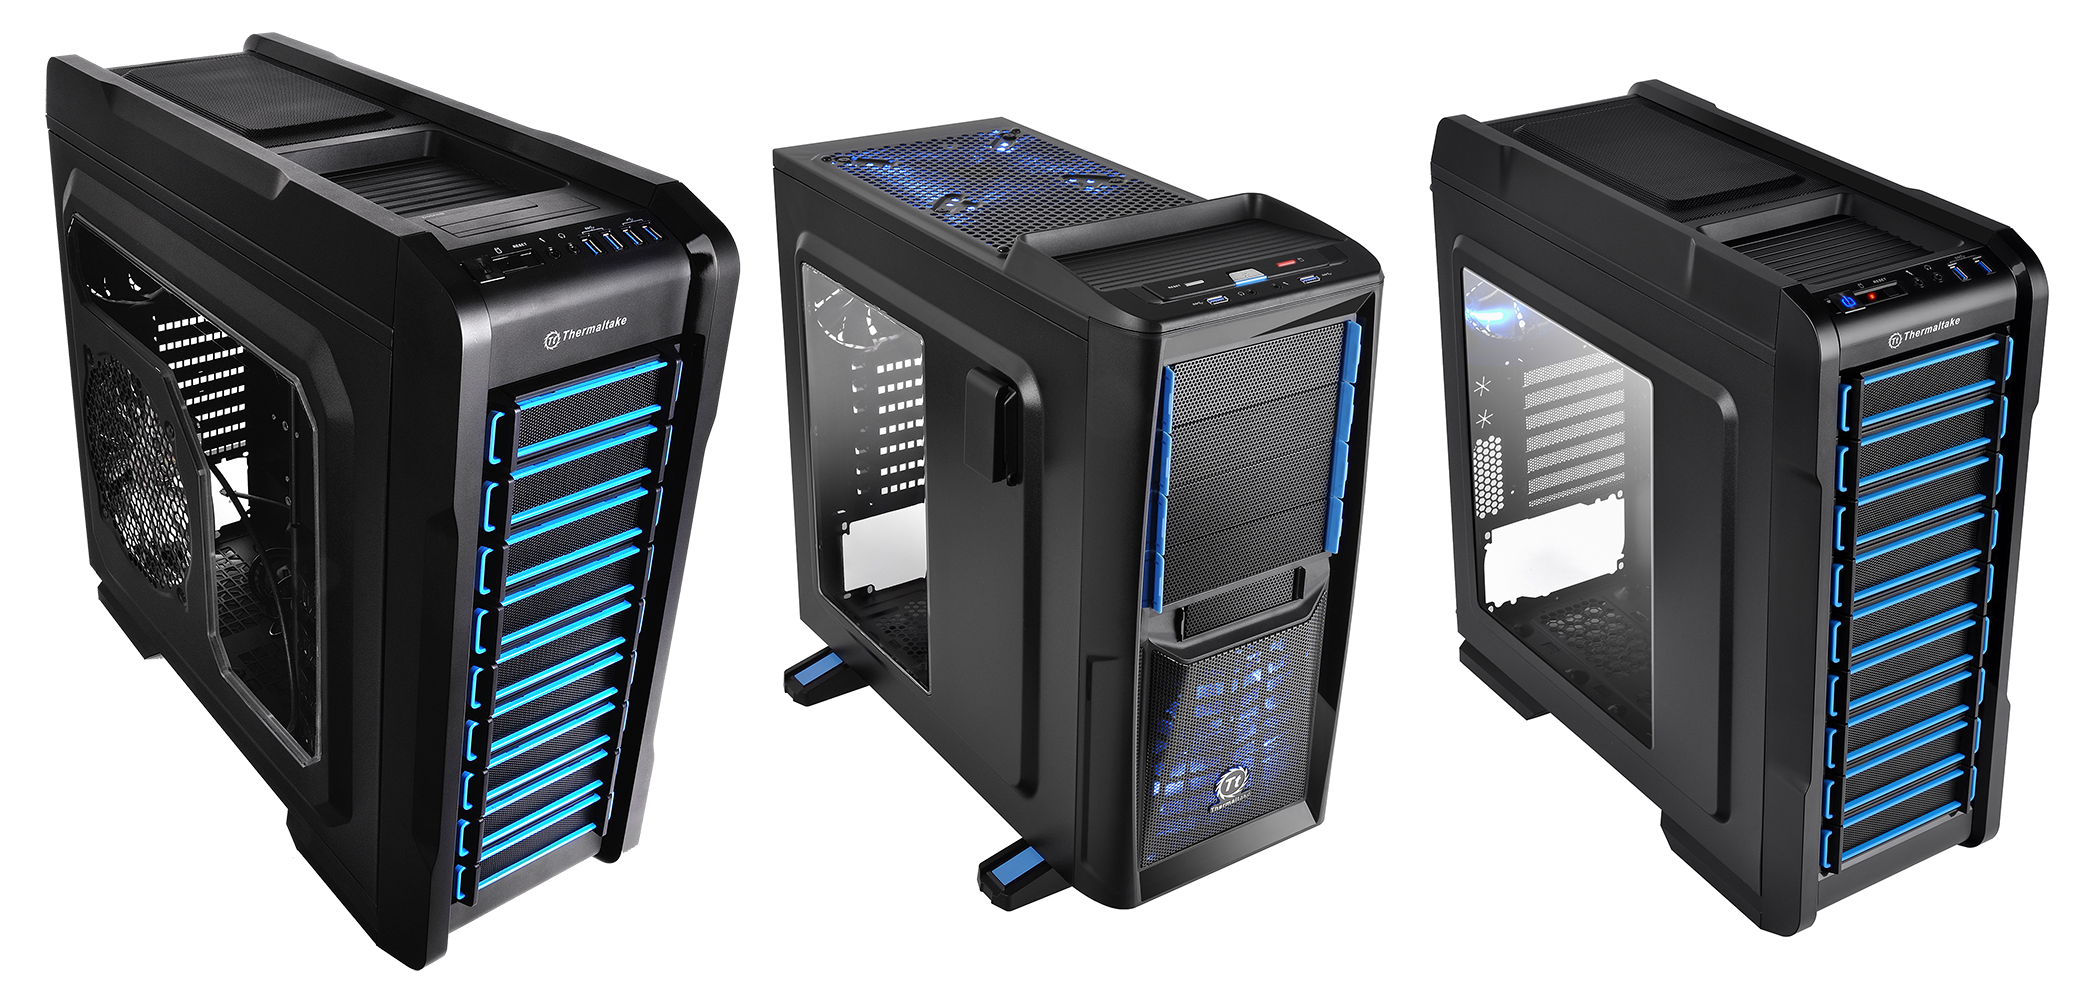 Thermaltake Chaser Series Cases